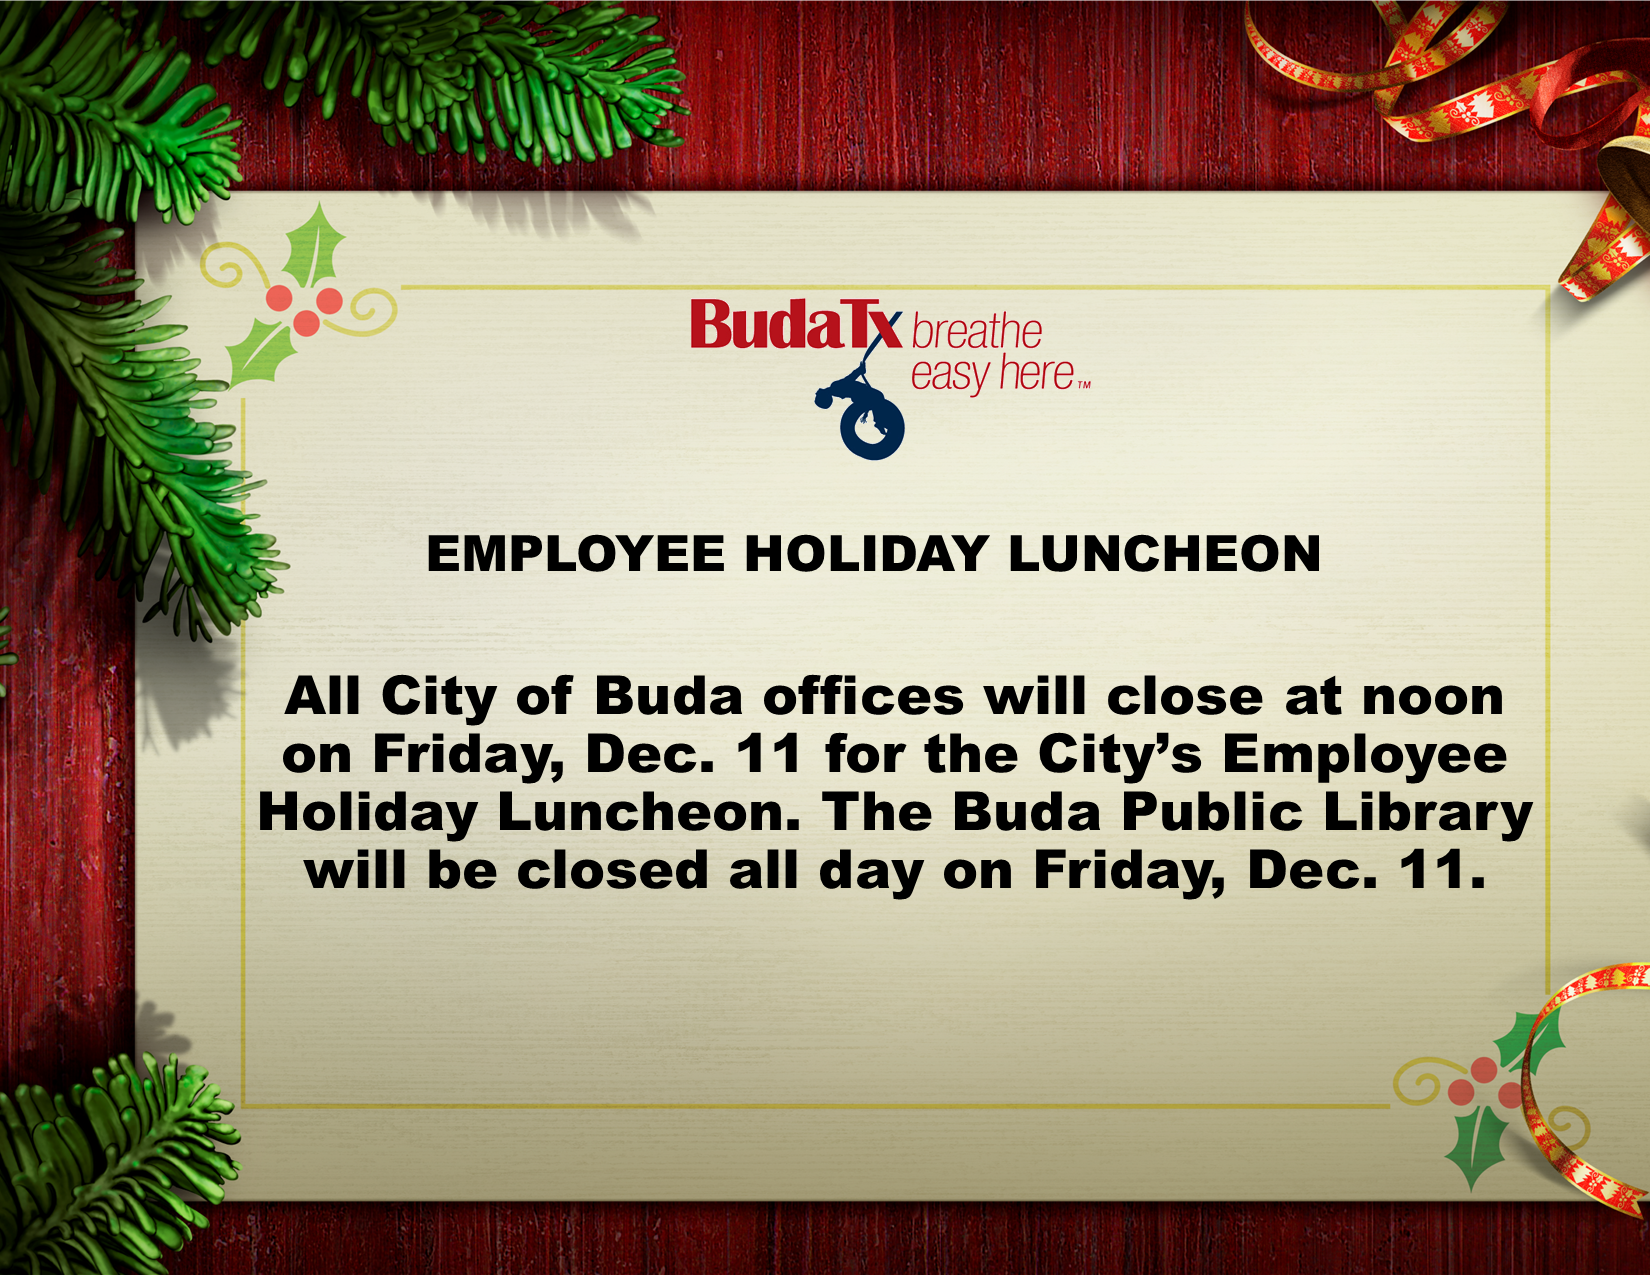 Employee Holiday Luncheon - City Offices Close Early - Friday, Dec. 11